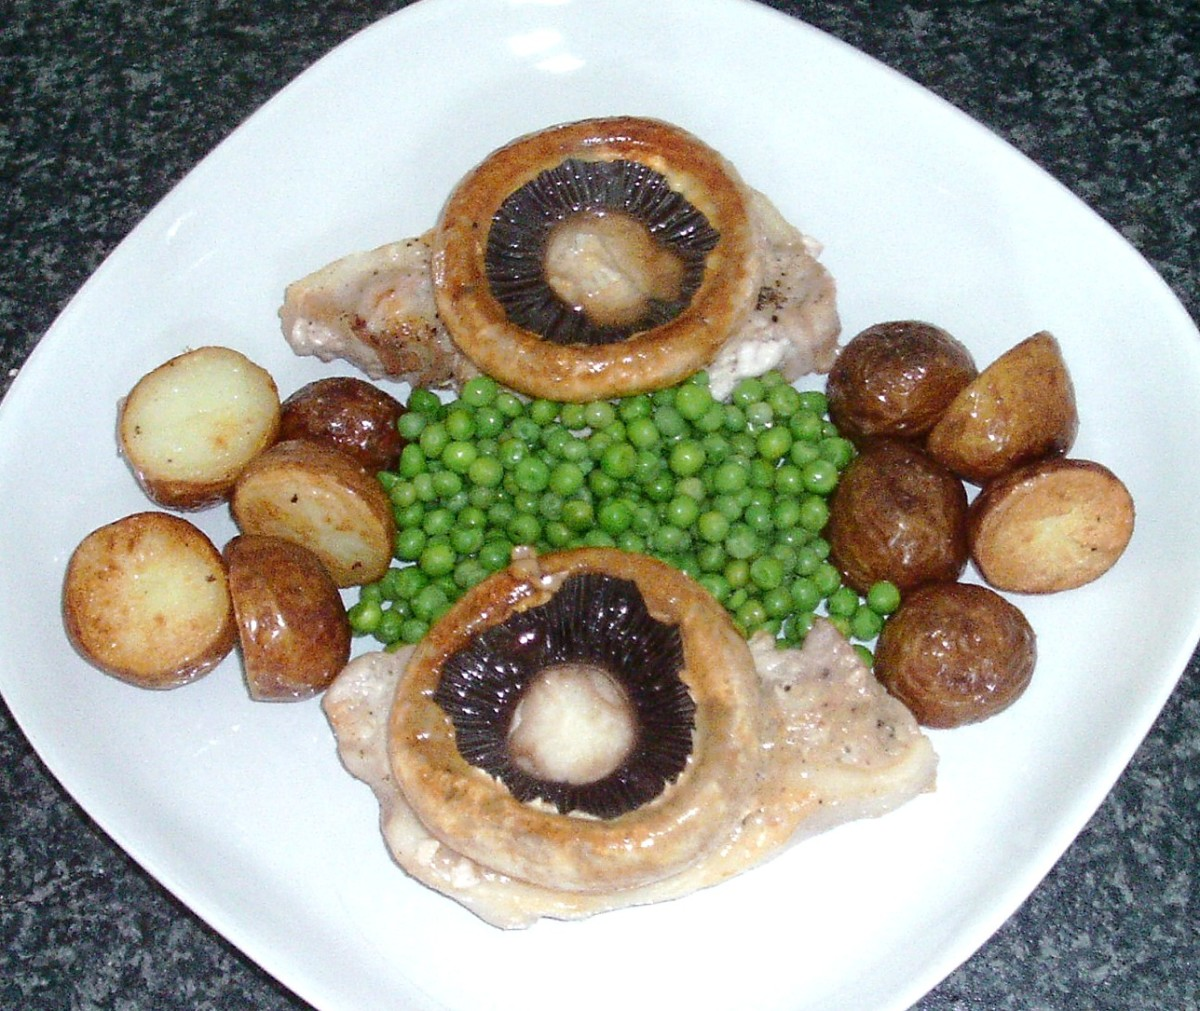 Deep fried potatoes and peas are arranged on serving plate